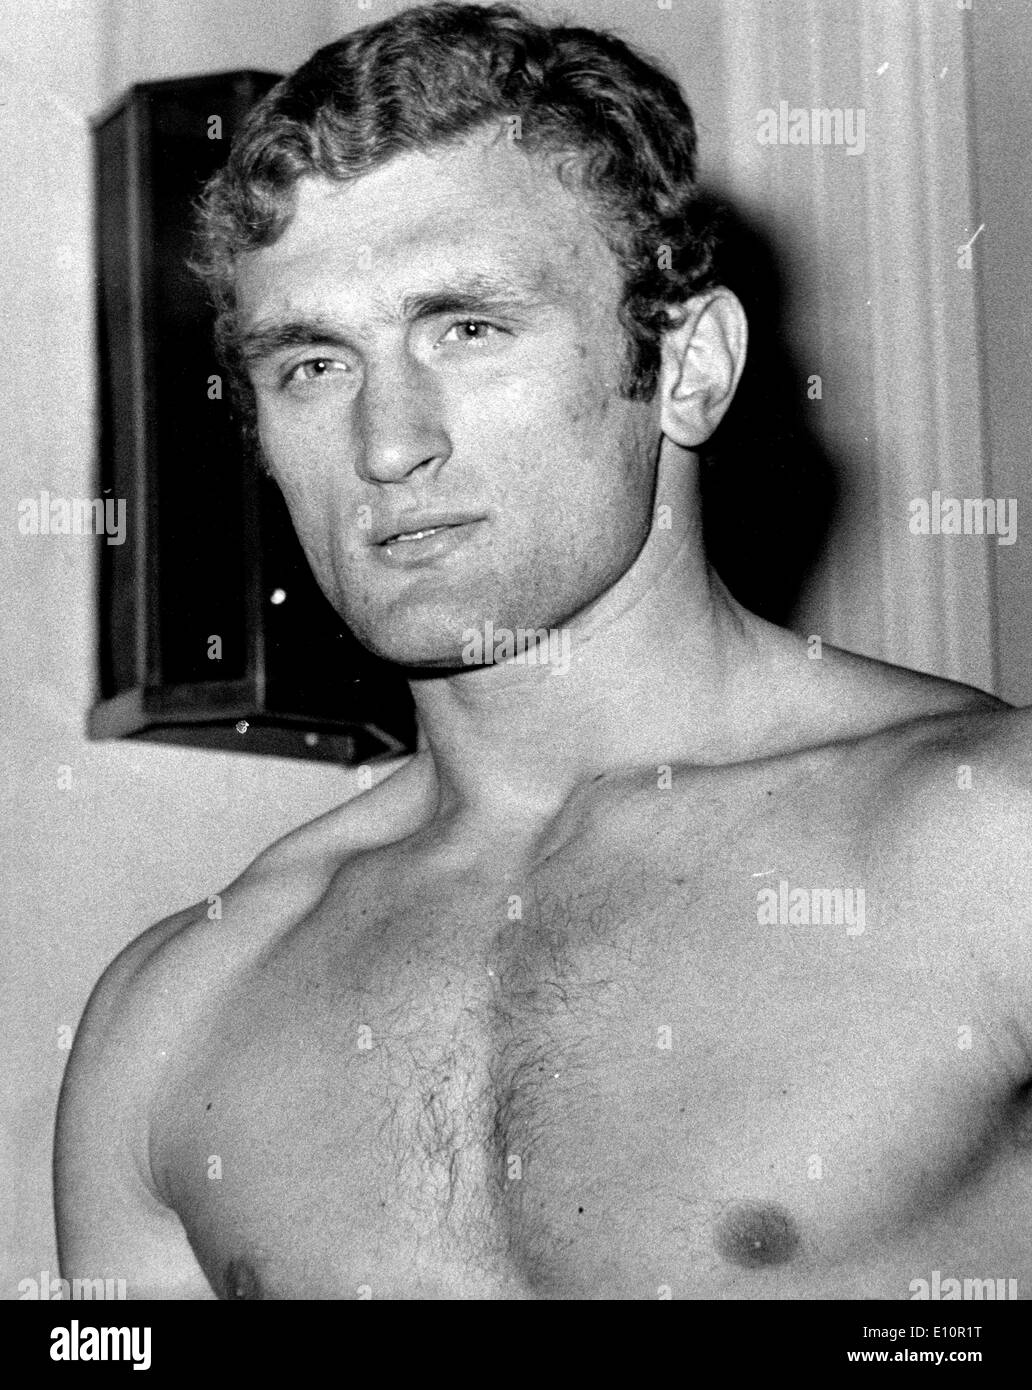 British heavyweight JOE BUGNER at weigh-in for his contest agains American heavyweight Charlie Polite at the Albert Hall in UK - Stock Image